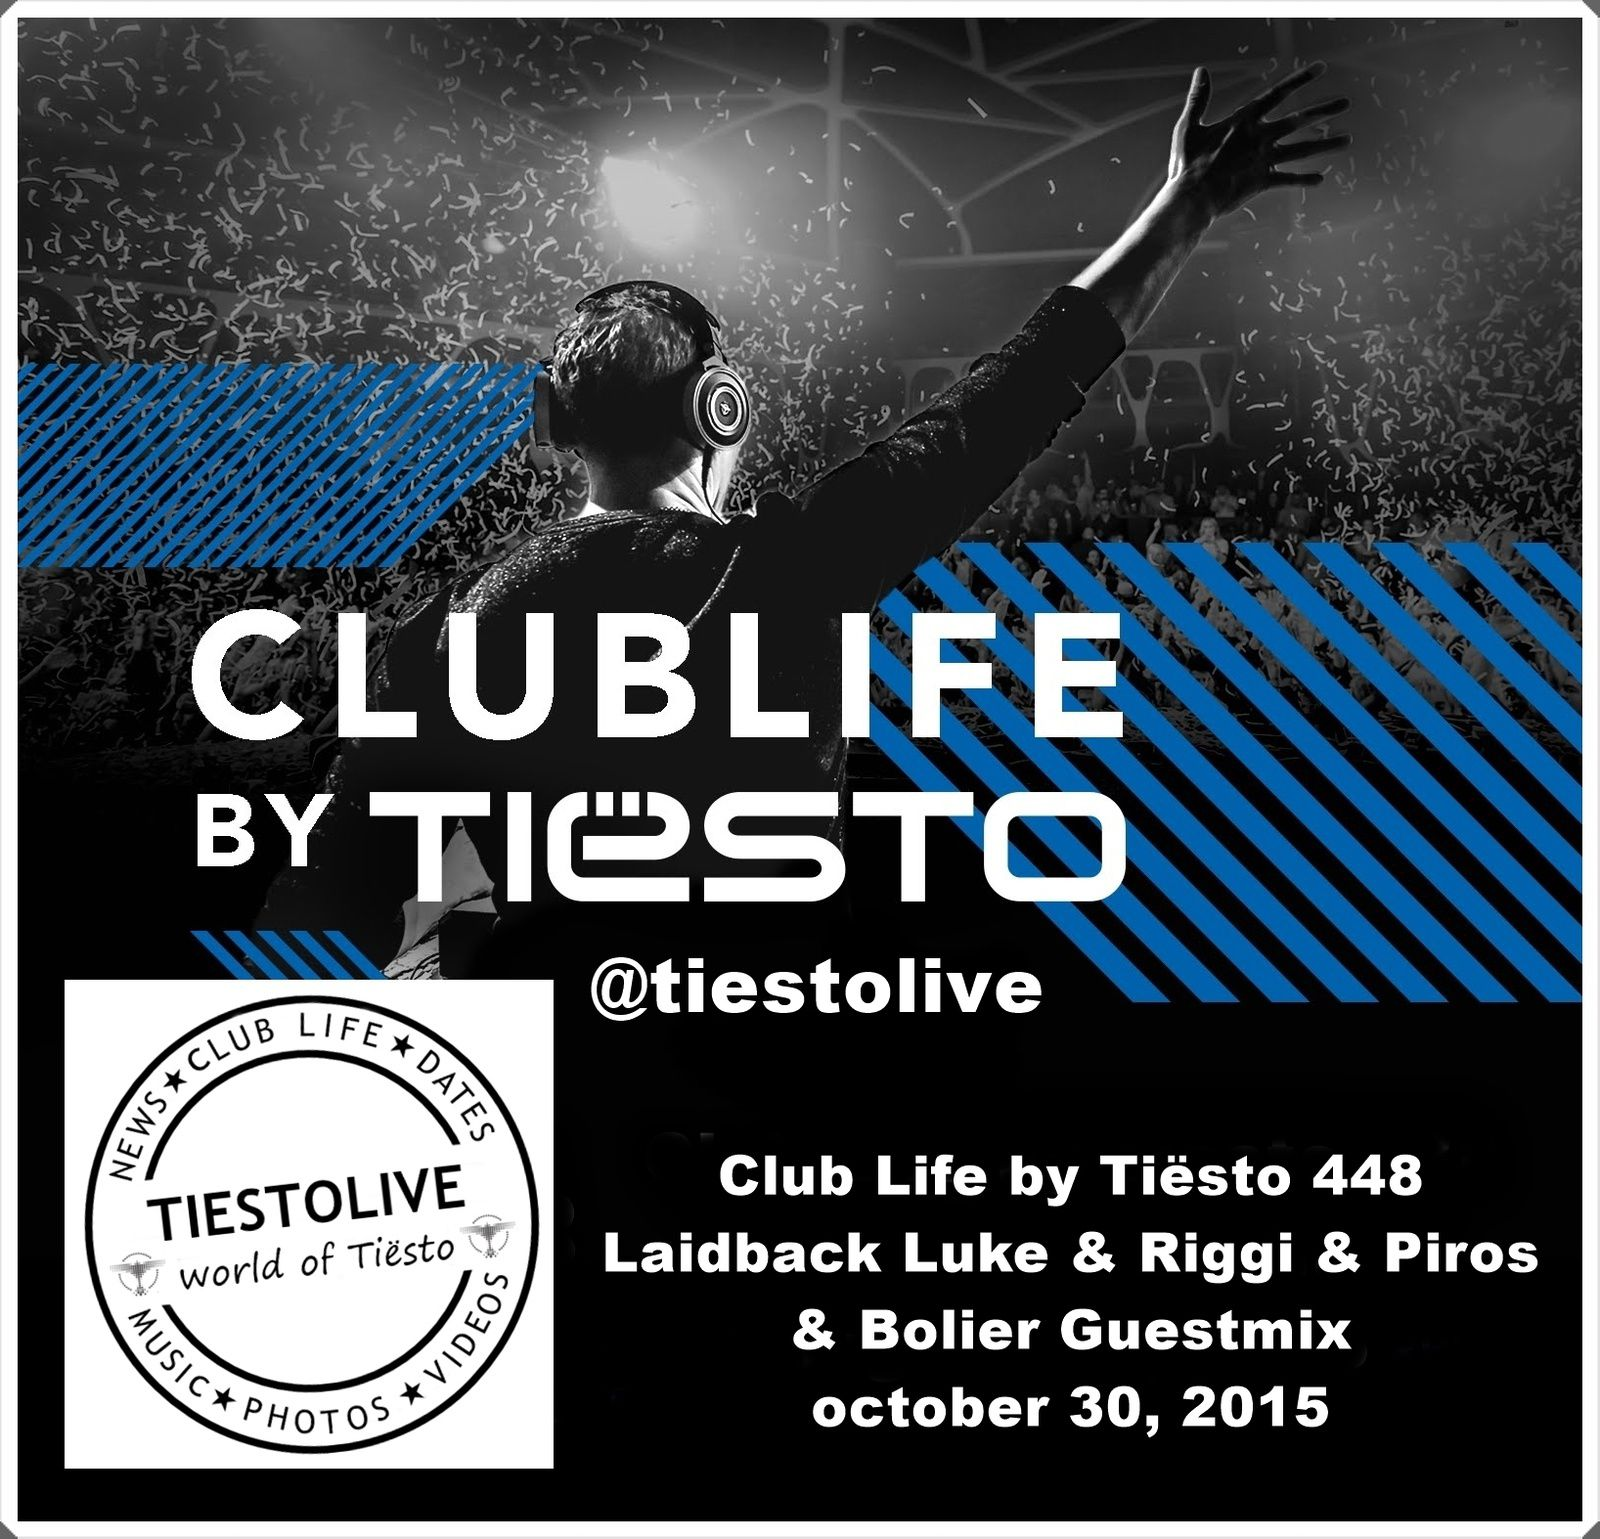 Club Life by Tiësto 448 - Laidback Luke & Riggi & Piros & Bolier Guestmix october 30, 2015